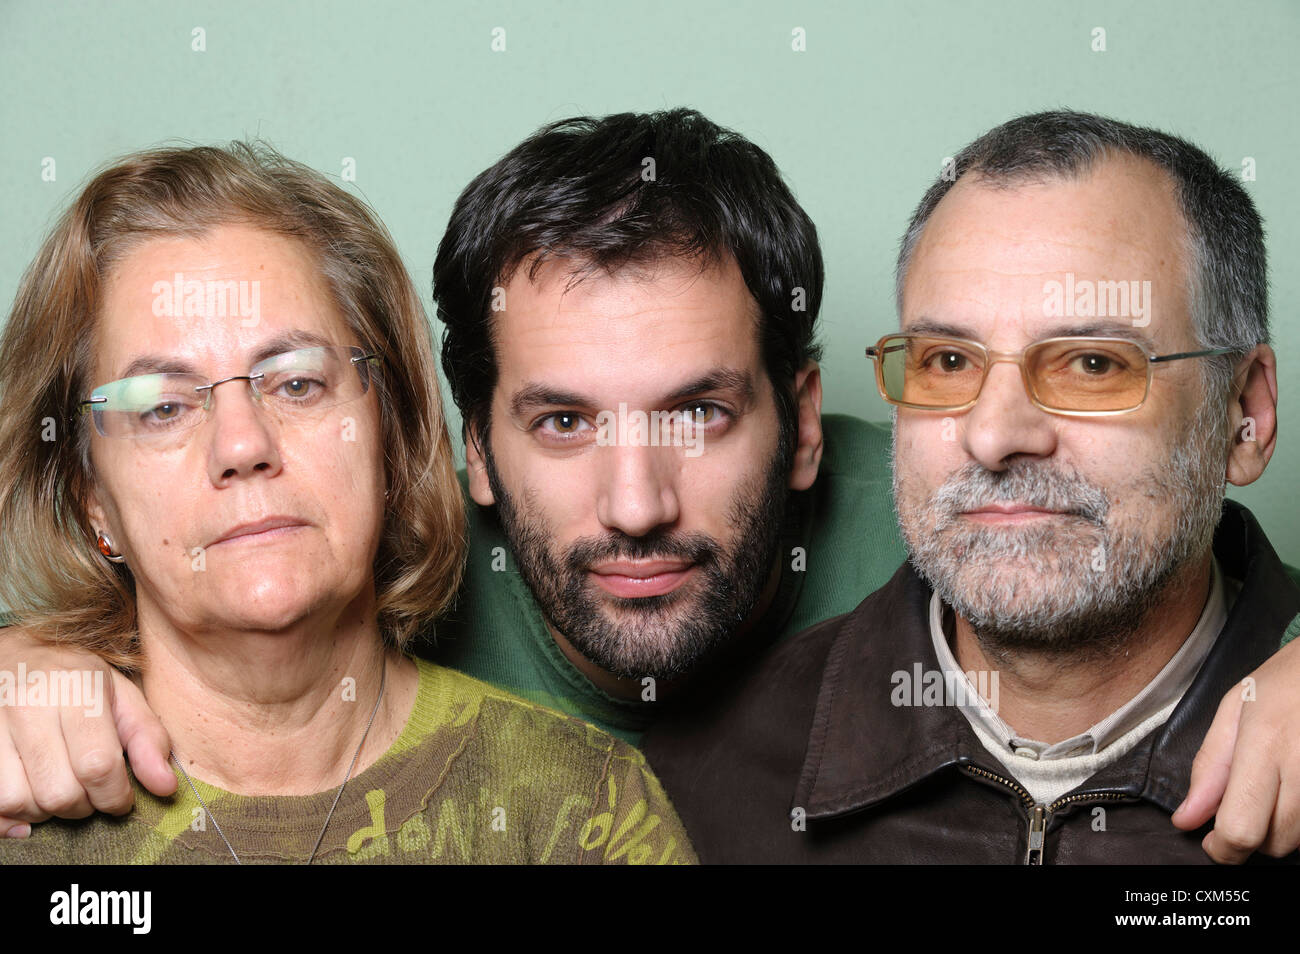 Family portrait with middle aged parents and son - Stock Image